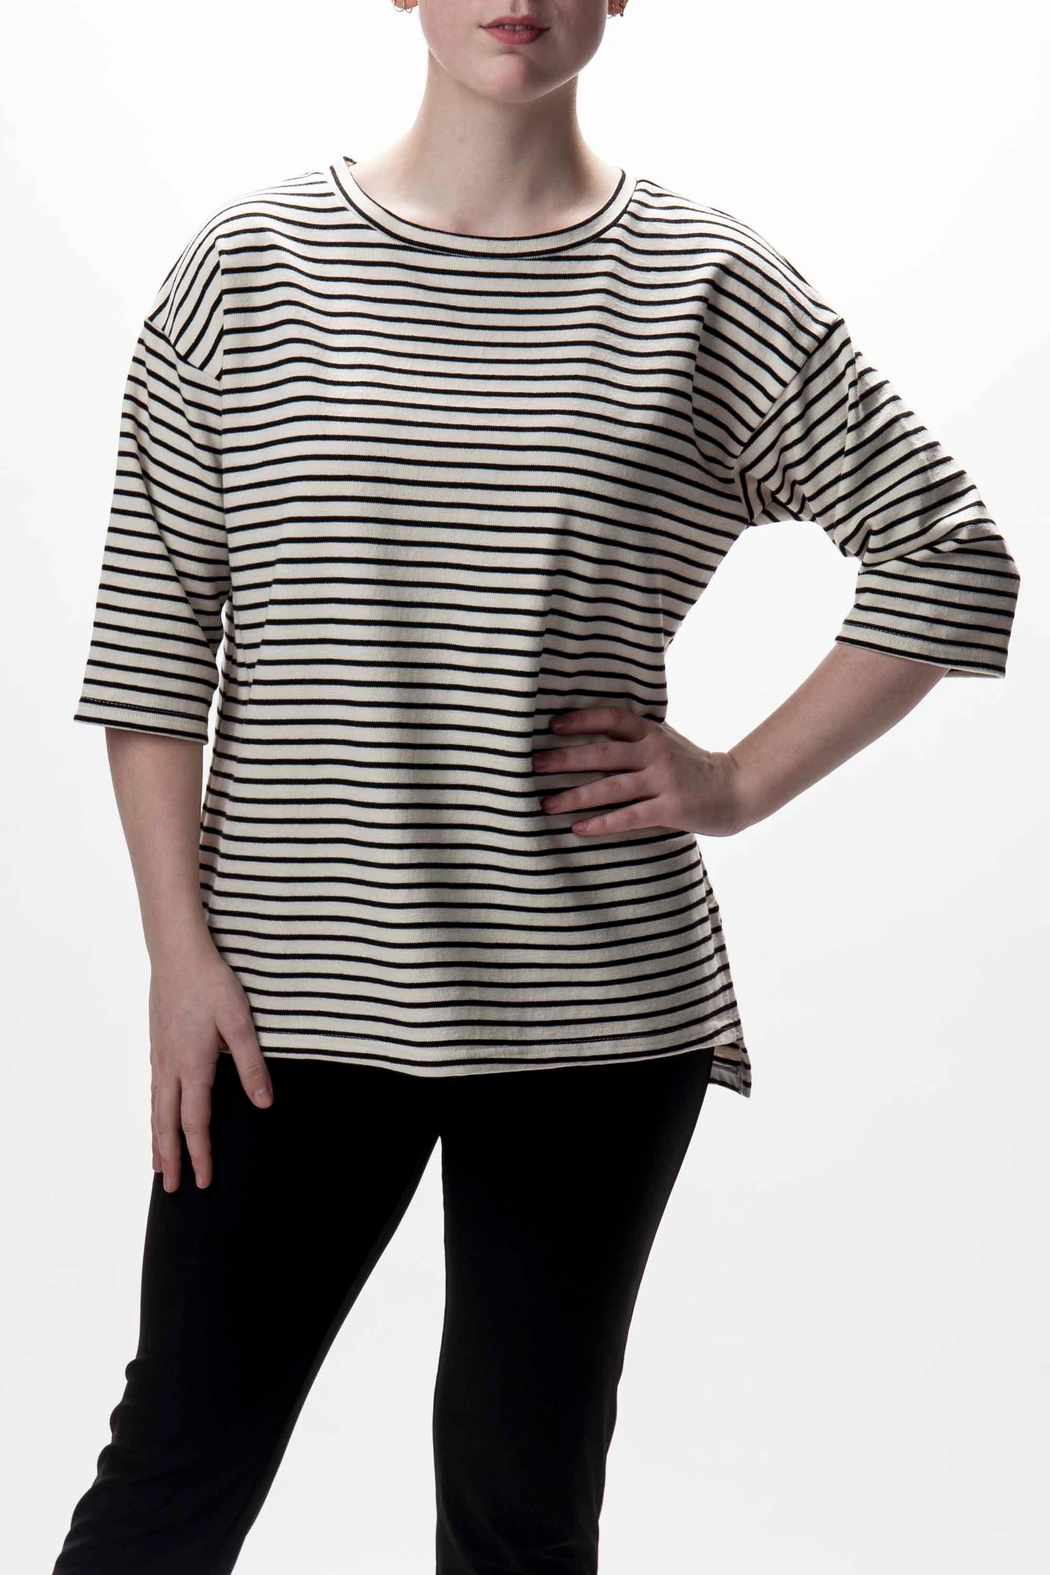 Go 2 Stripe Print Summer Sweater from Canada by JEMS — Shoptiques